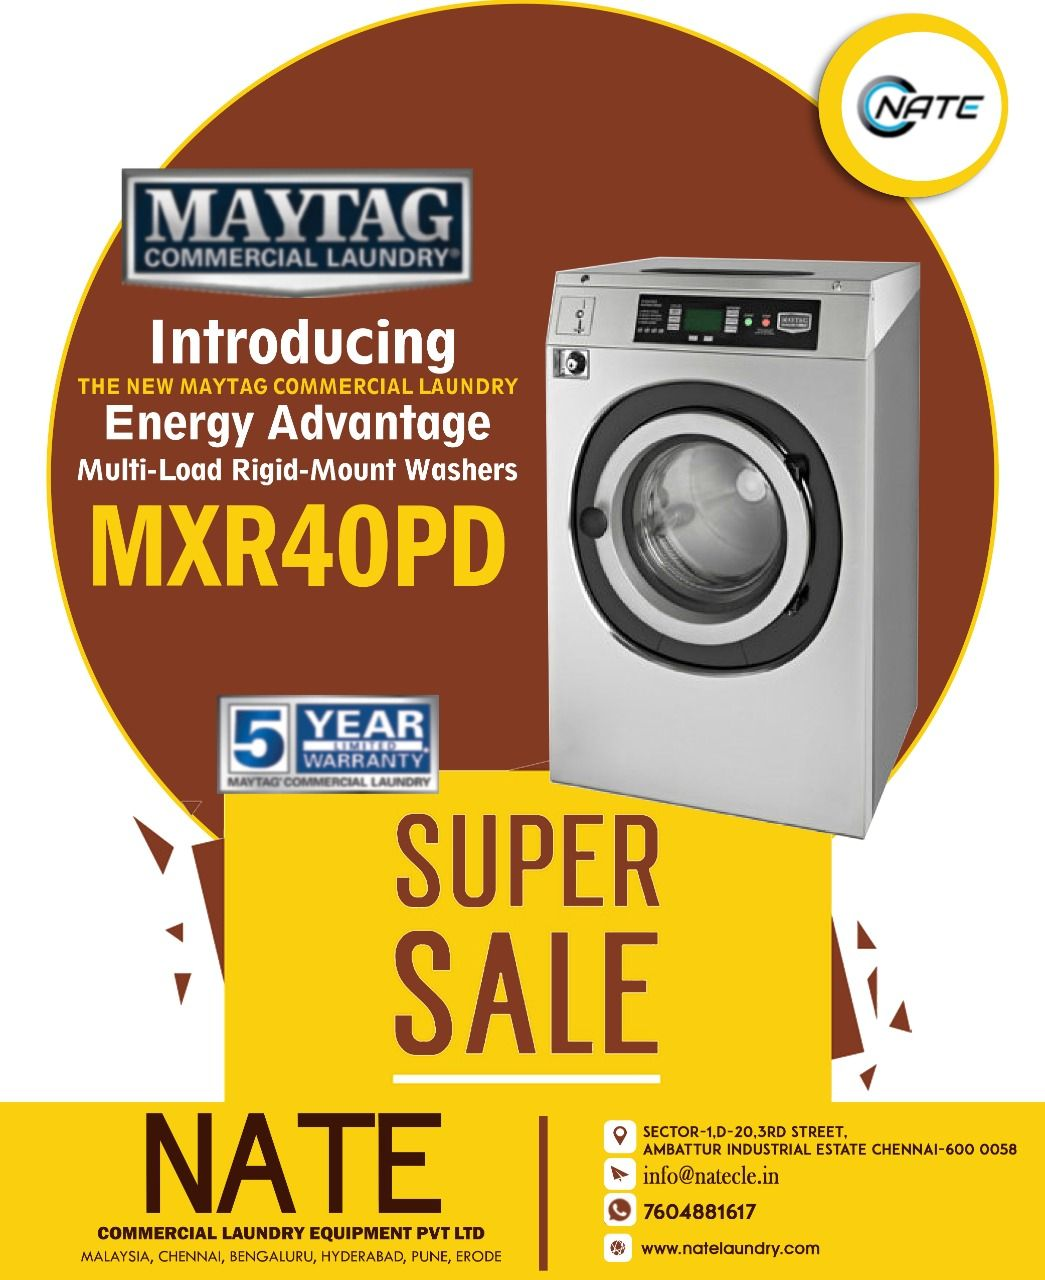 Shop Imported Maytag 15kg Washer For Sale Maytag Usa Commercial Laundry 10 Off 5 Year Warranty Get Ou Commercial Laundry Laundry Equipment Maytag